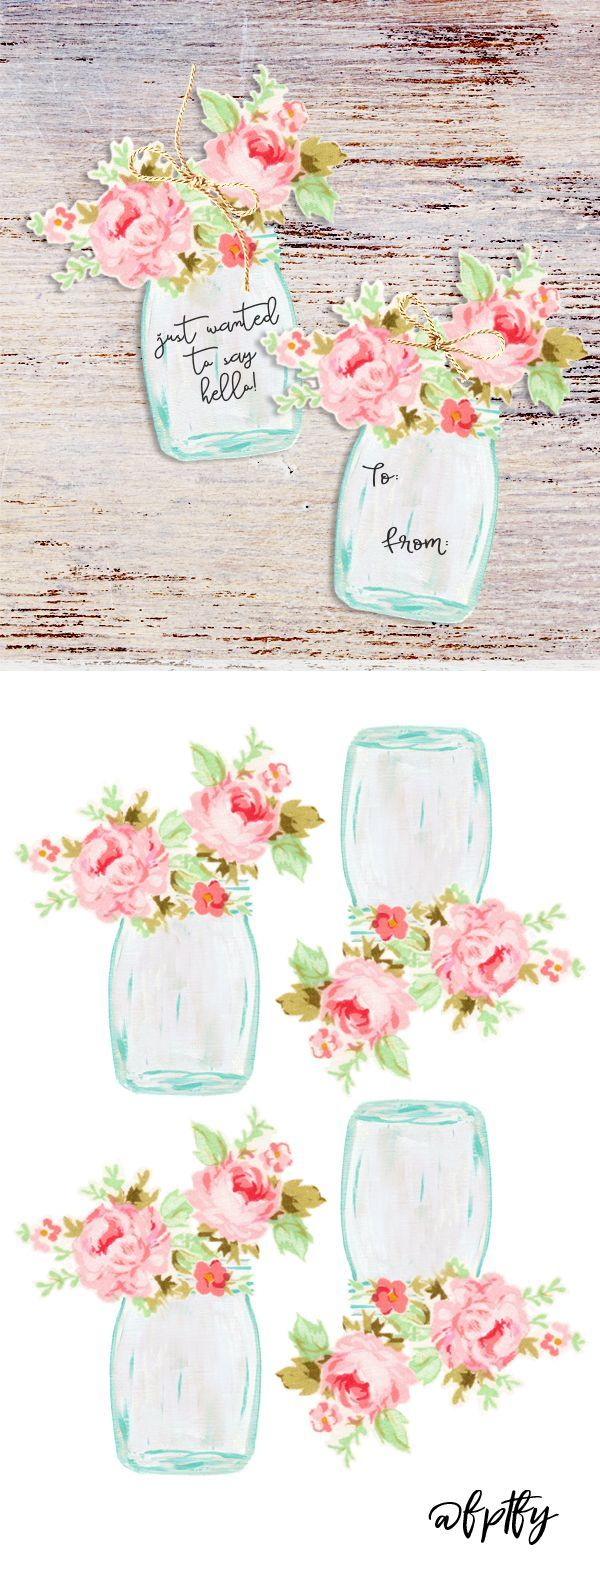 Free Mason Jar Flower Tags